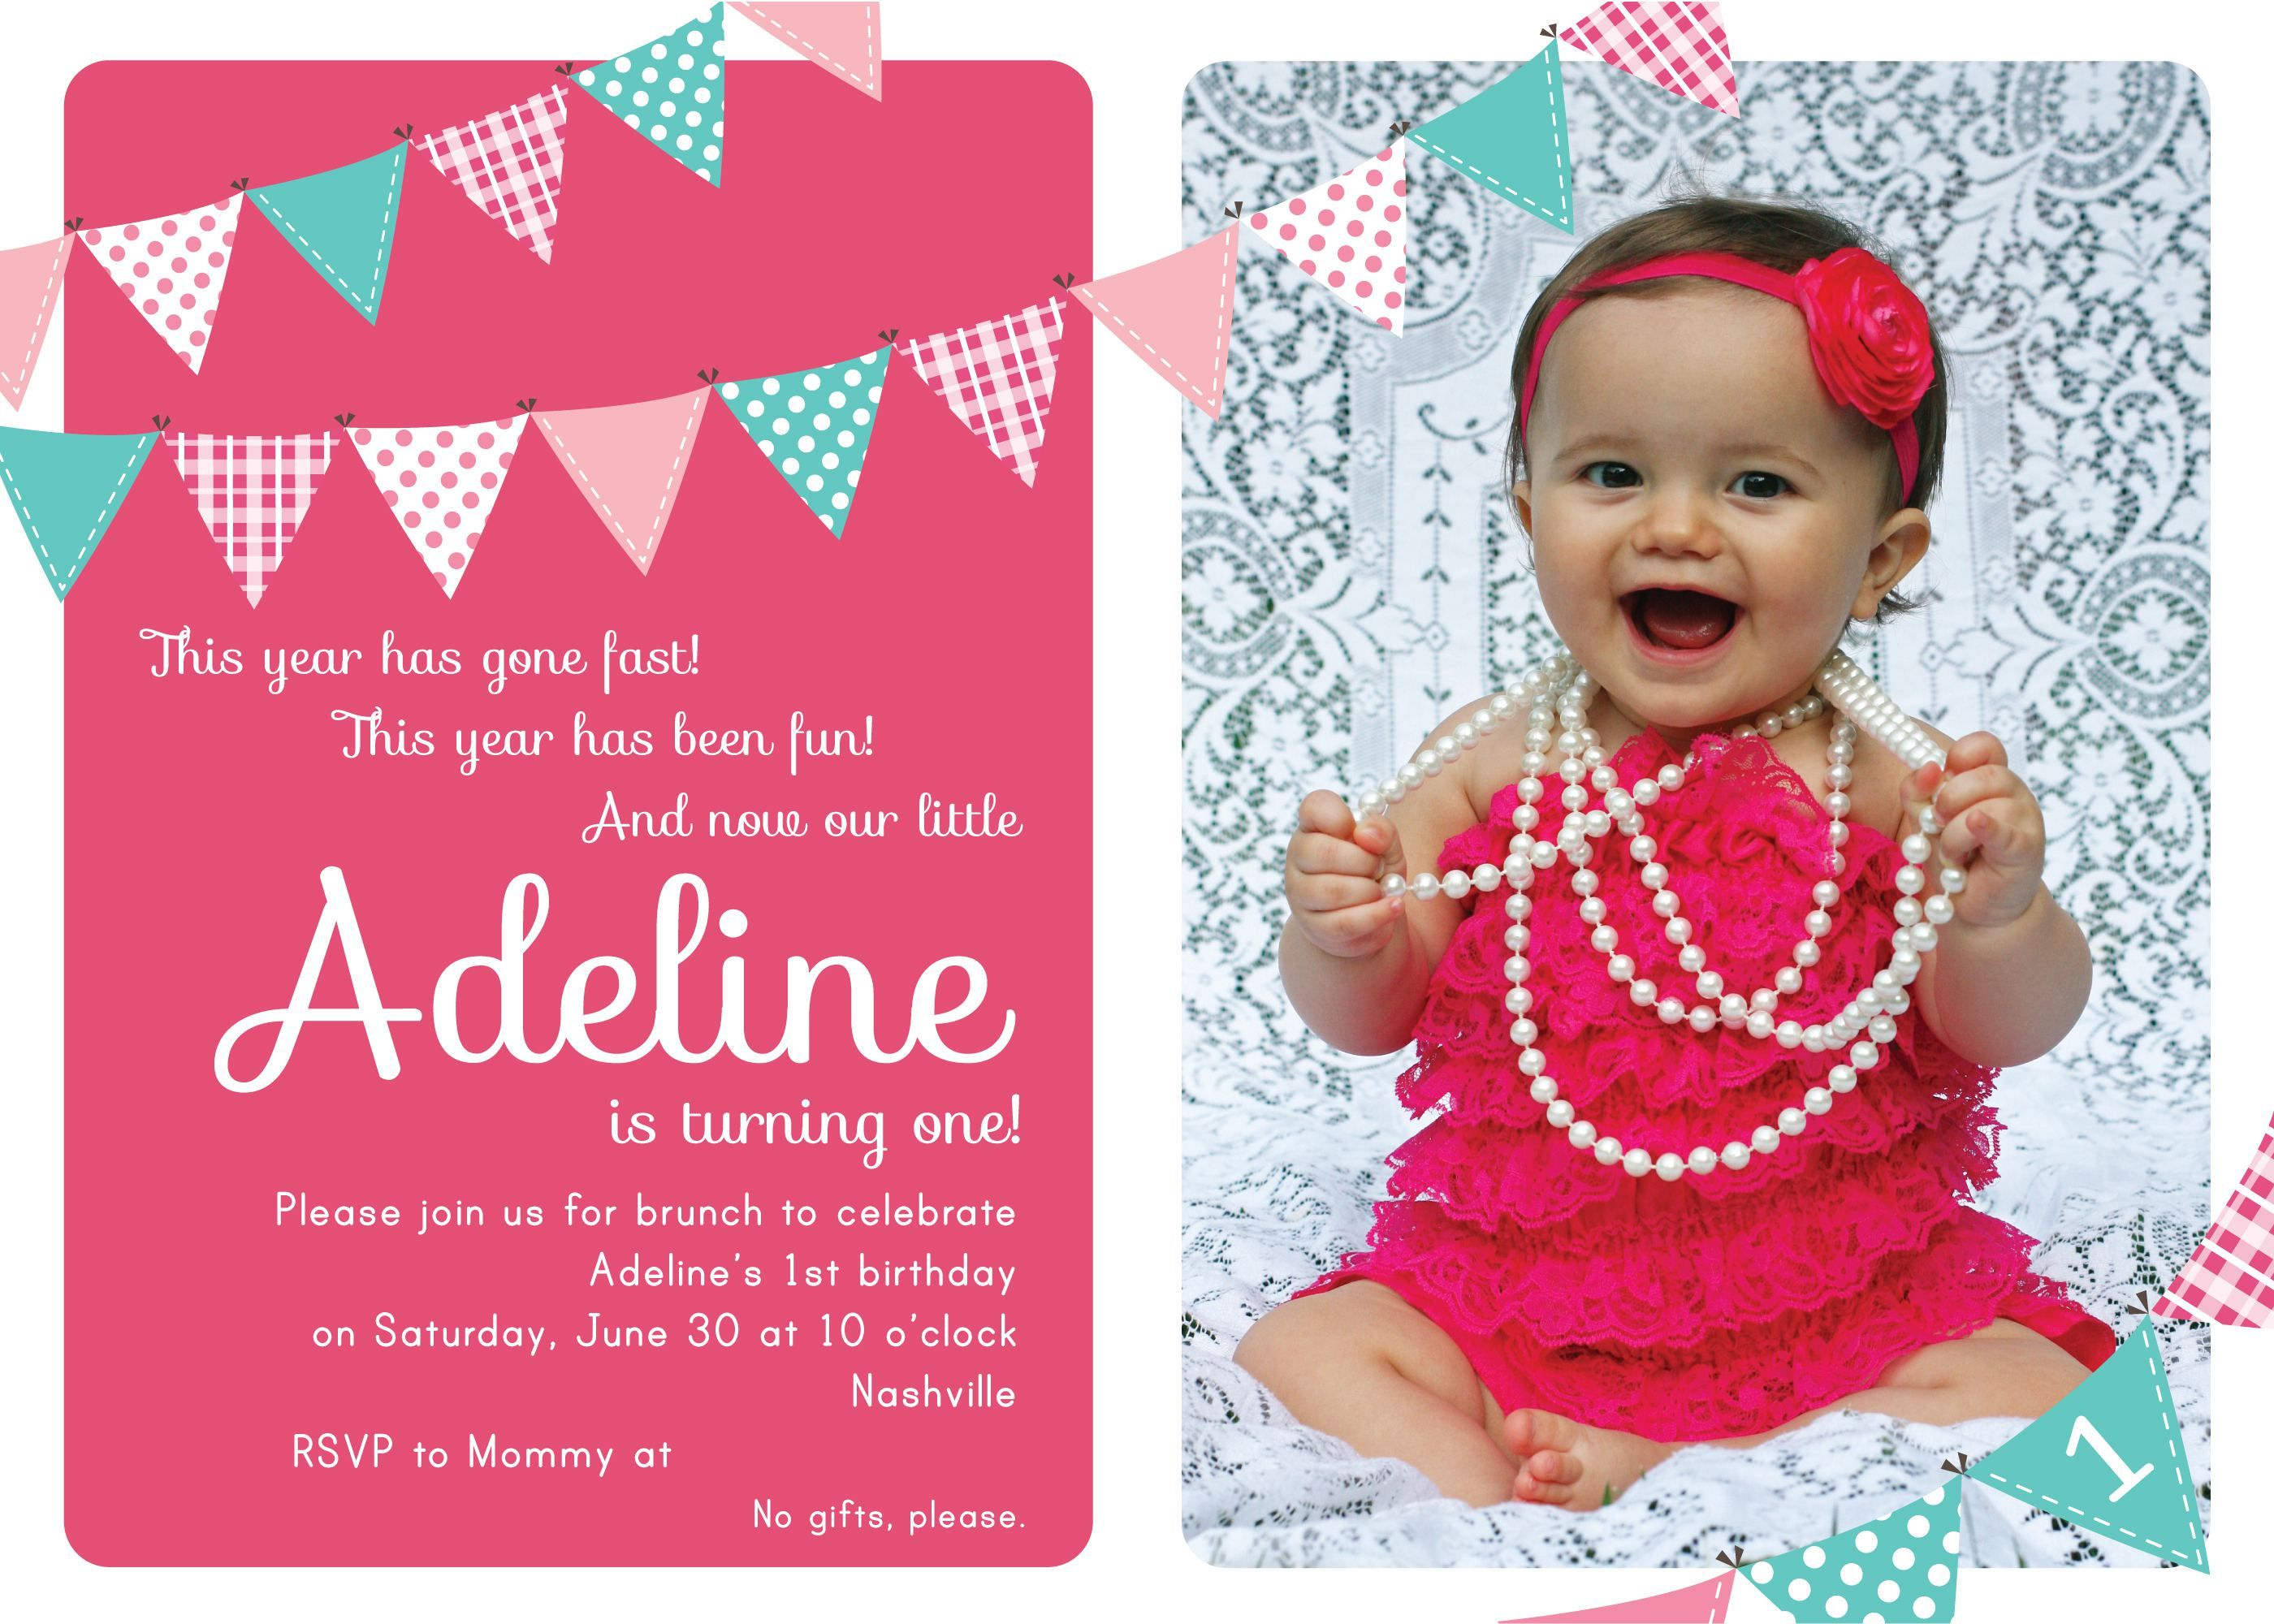 Baptism invitation sample wording baptism invitations your dinosaur birthday invitation best birthday party invitations free templates stopboris Images